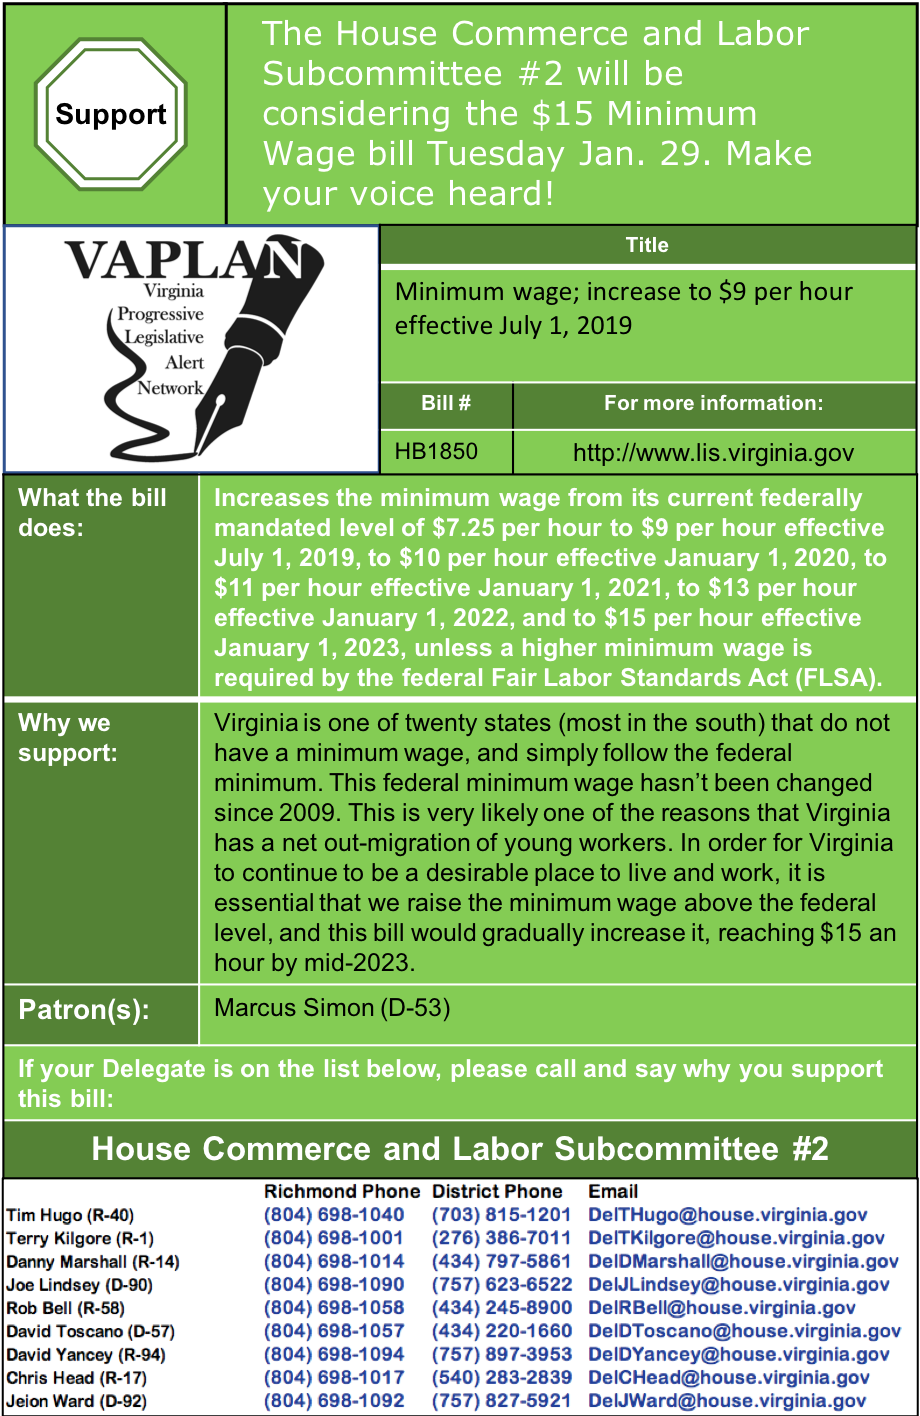 ALERT: $15 minimum wage bill being heard in House Commerce & Labor Subcommittee #2 Tuesday Jan. 29!